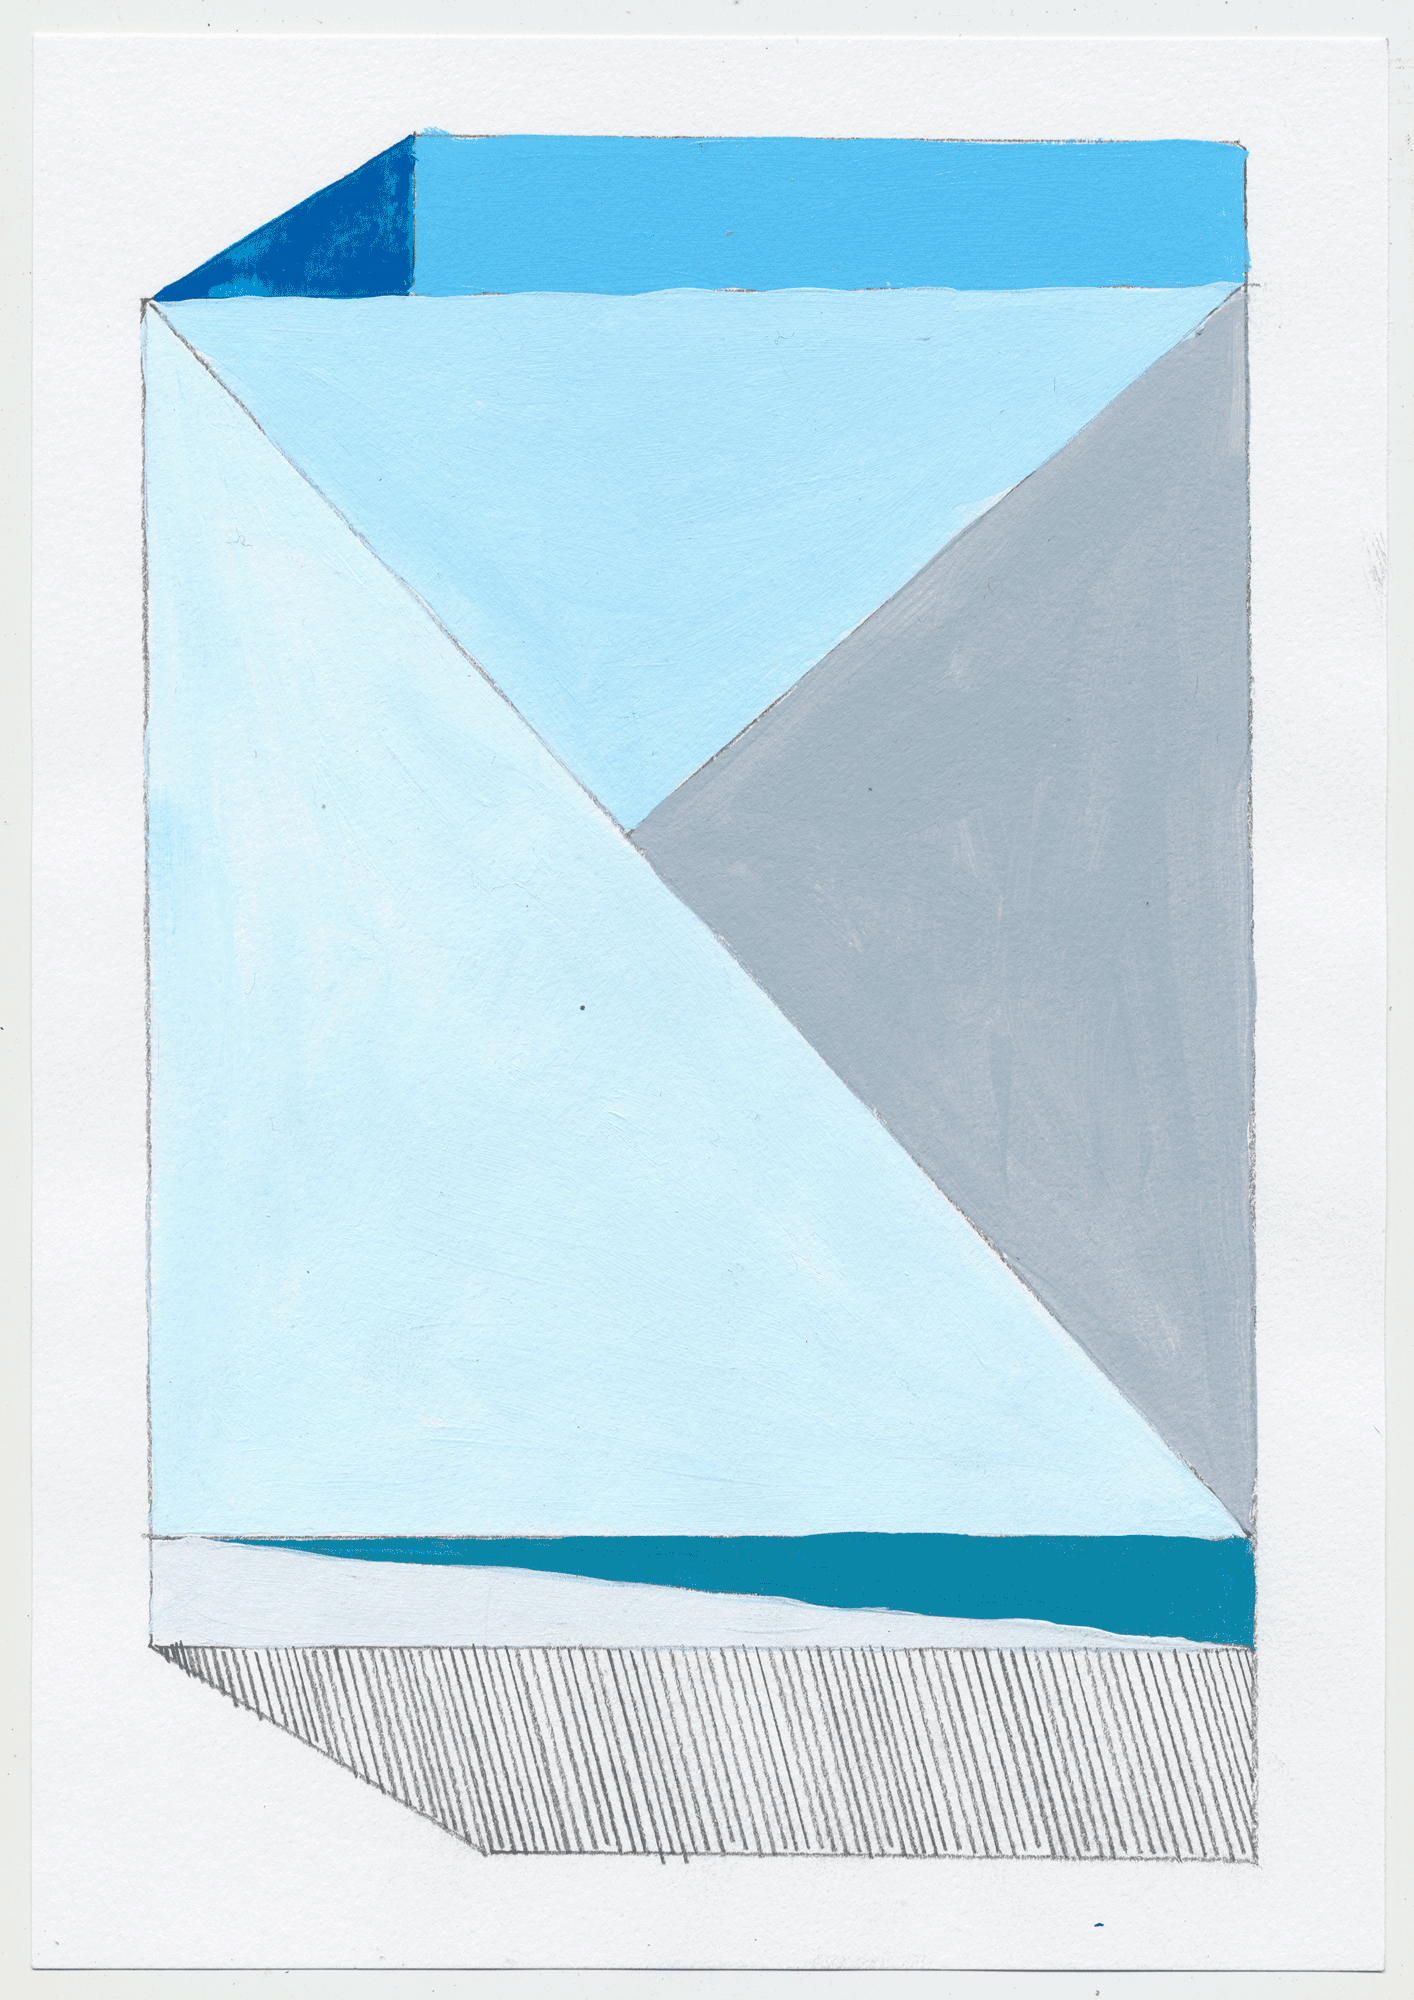 "NY1714 10"" X 7"", acrylic on paper, 2017  available at Etsy   another set of quick sketches to help break up the painting process & play with color. these could make fantastic rugs!"